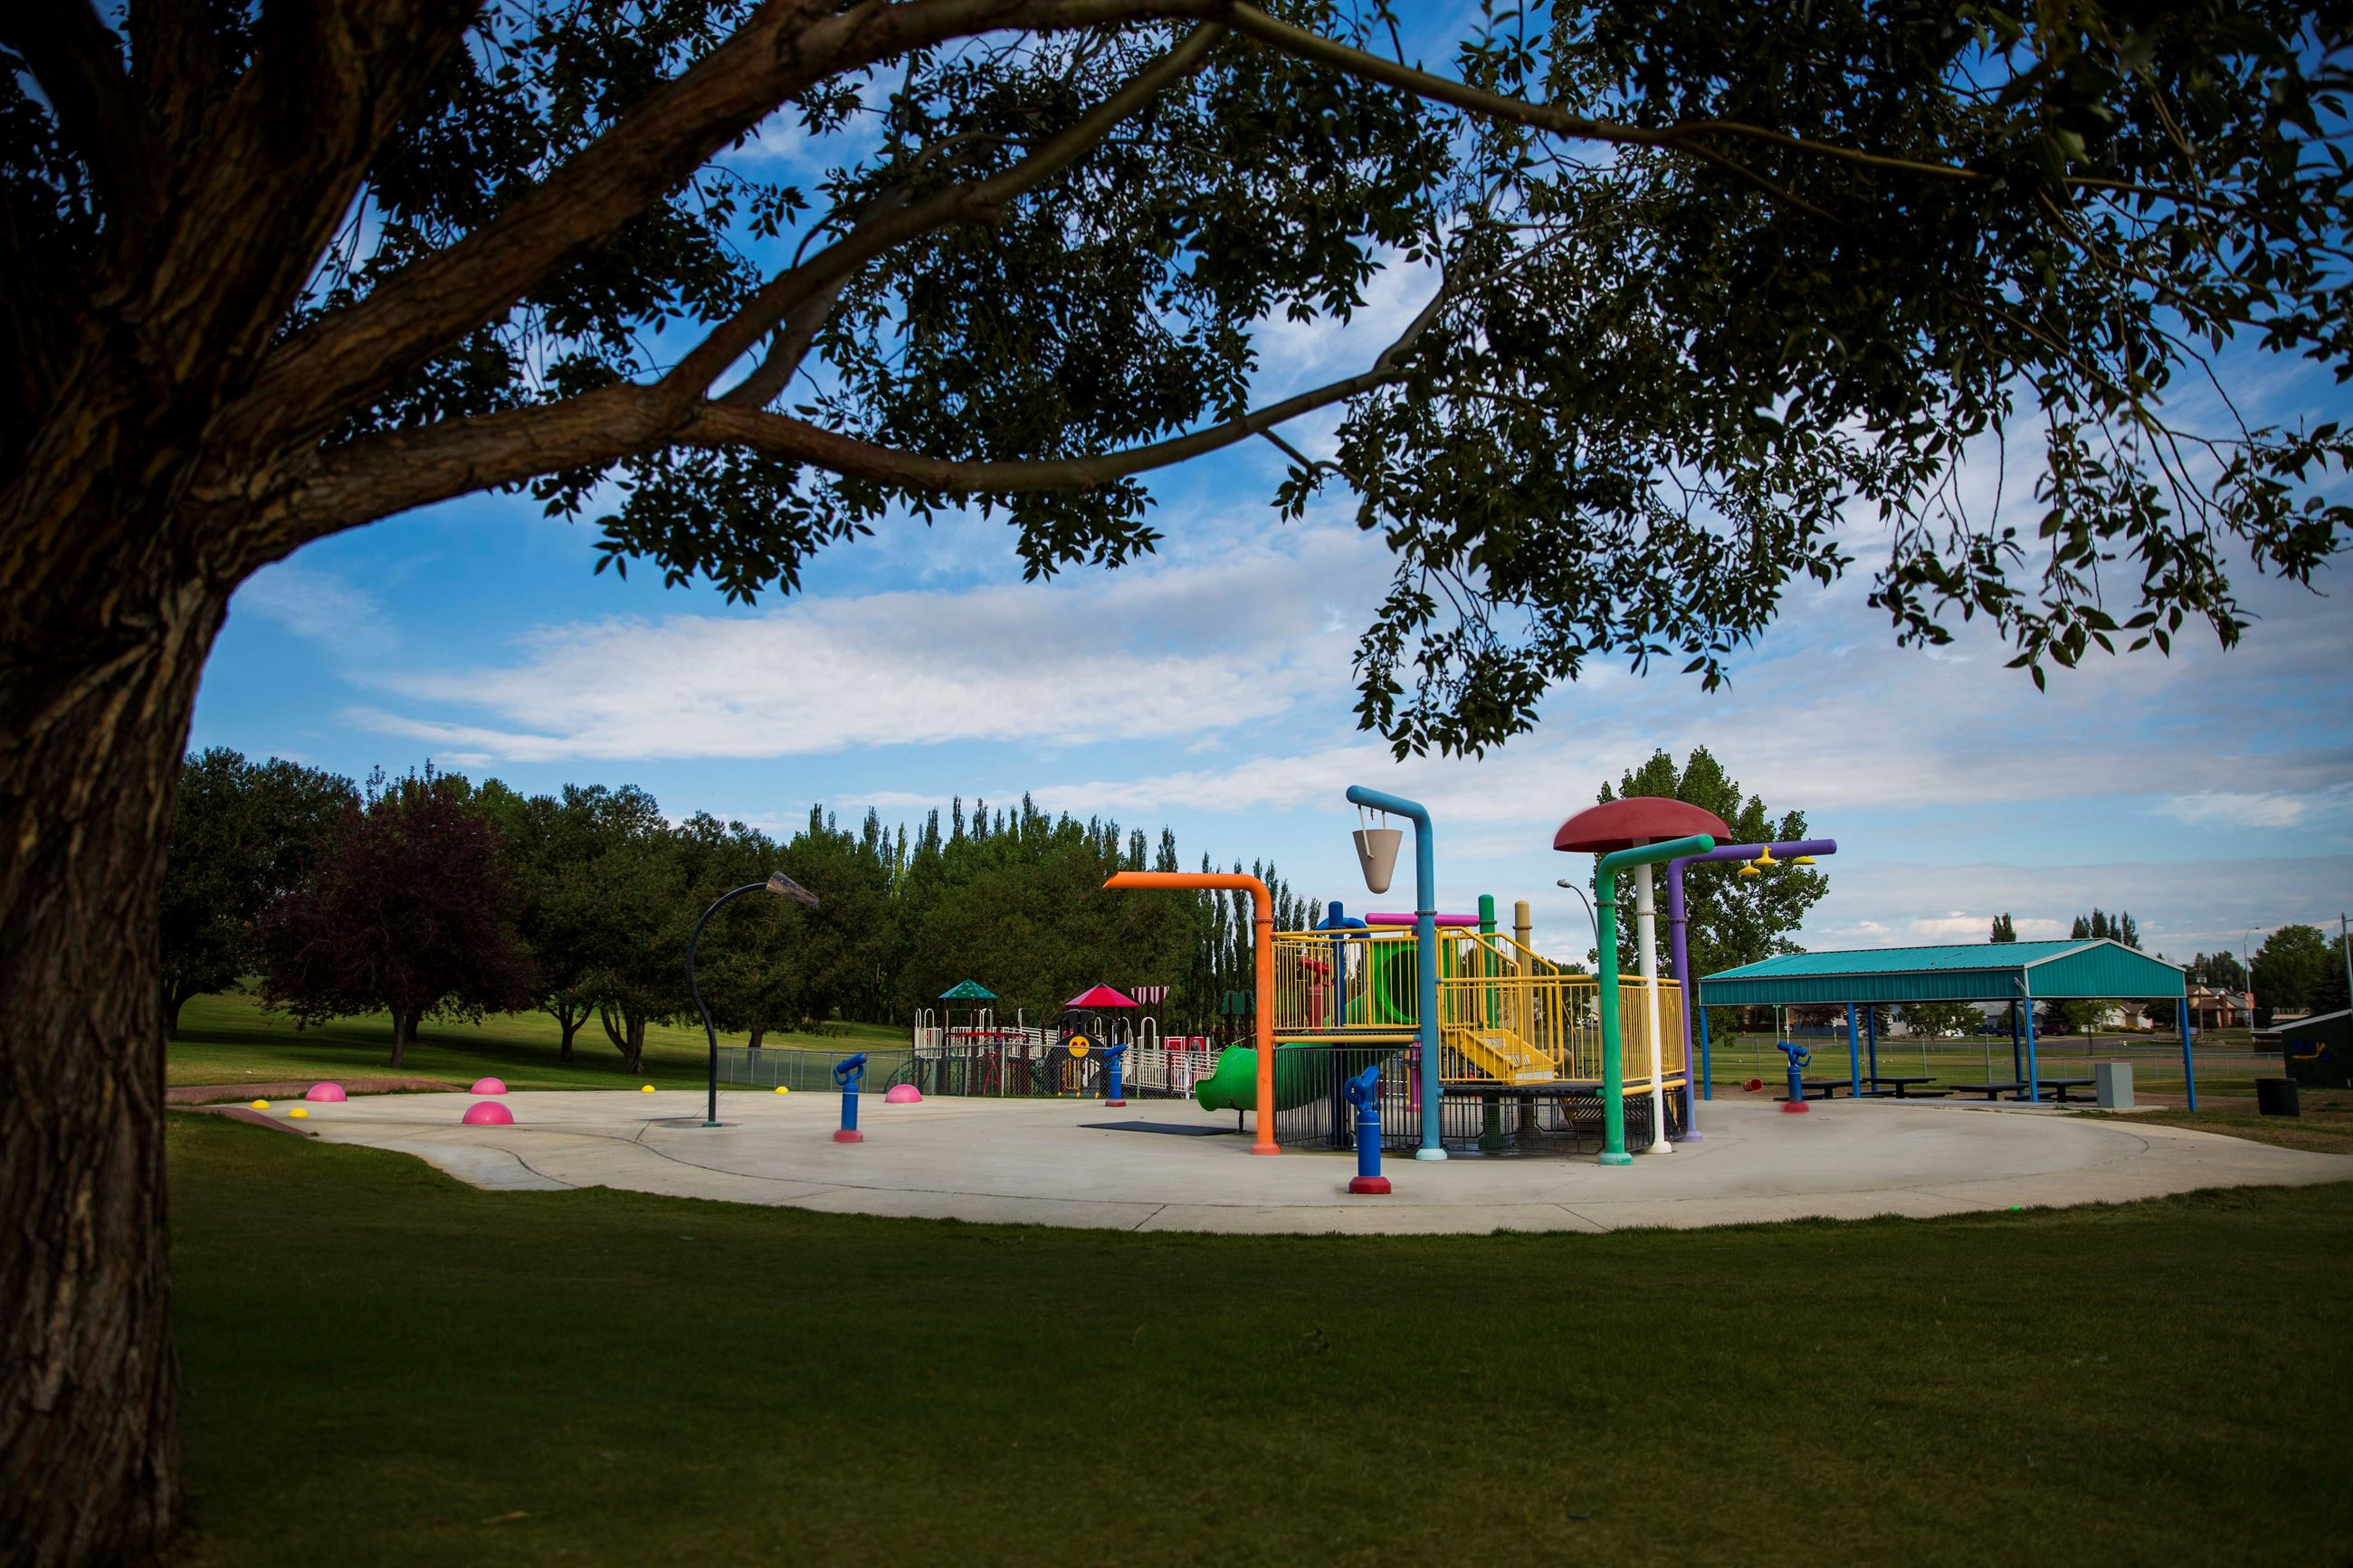 Duke of Sutherland Water Park play equipment